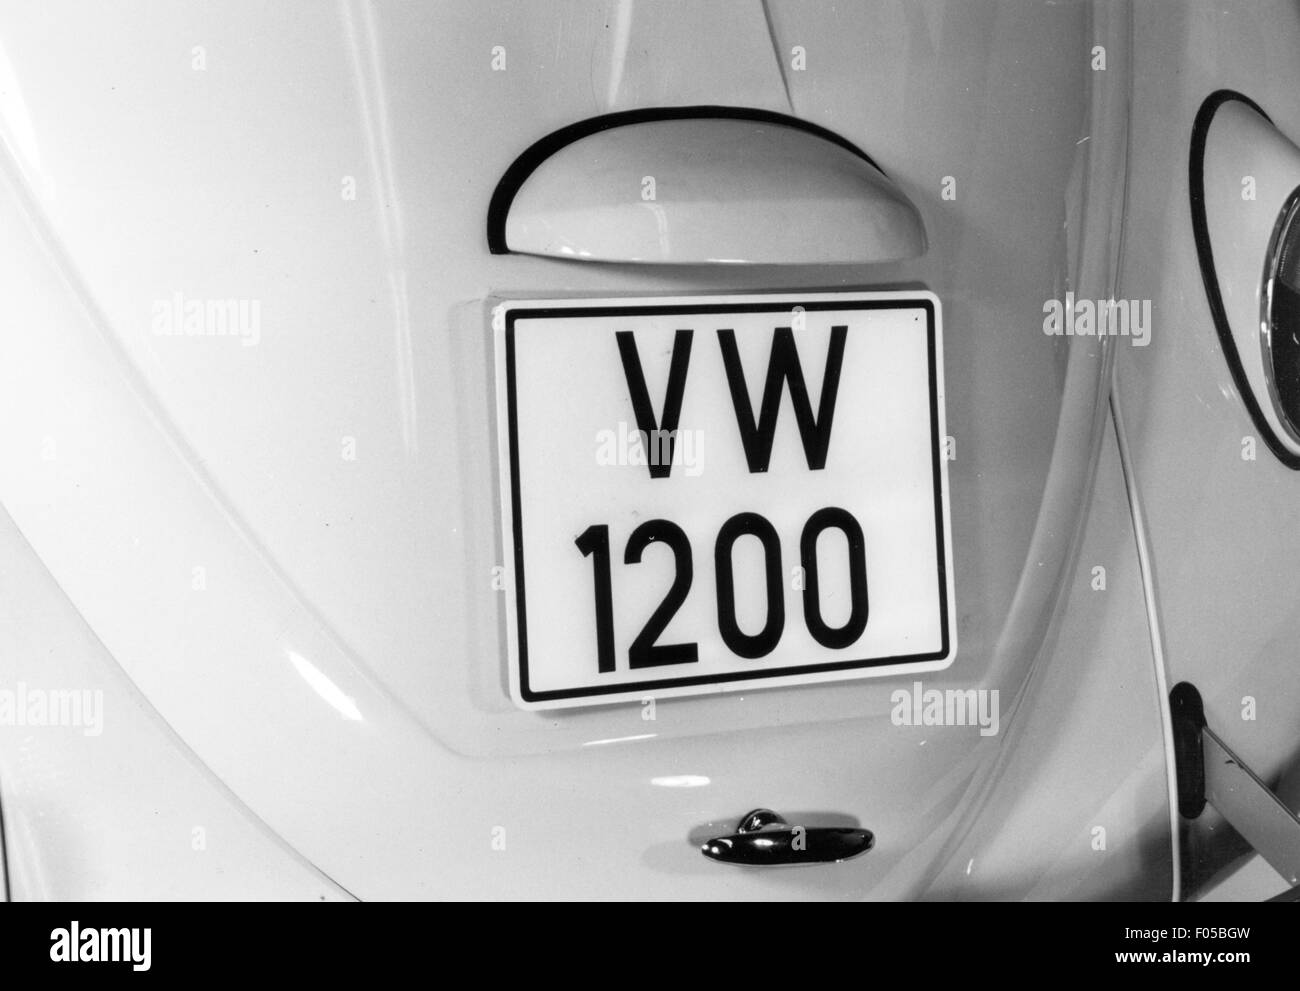 transport / transportation, car, vehicle variants, Volkswagen, VW Beetle 1200, details, number plate at rear, above Stock Photo